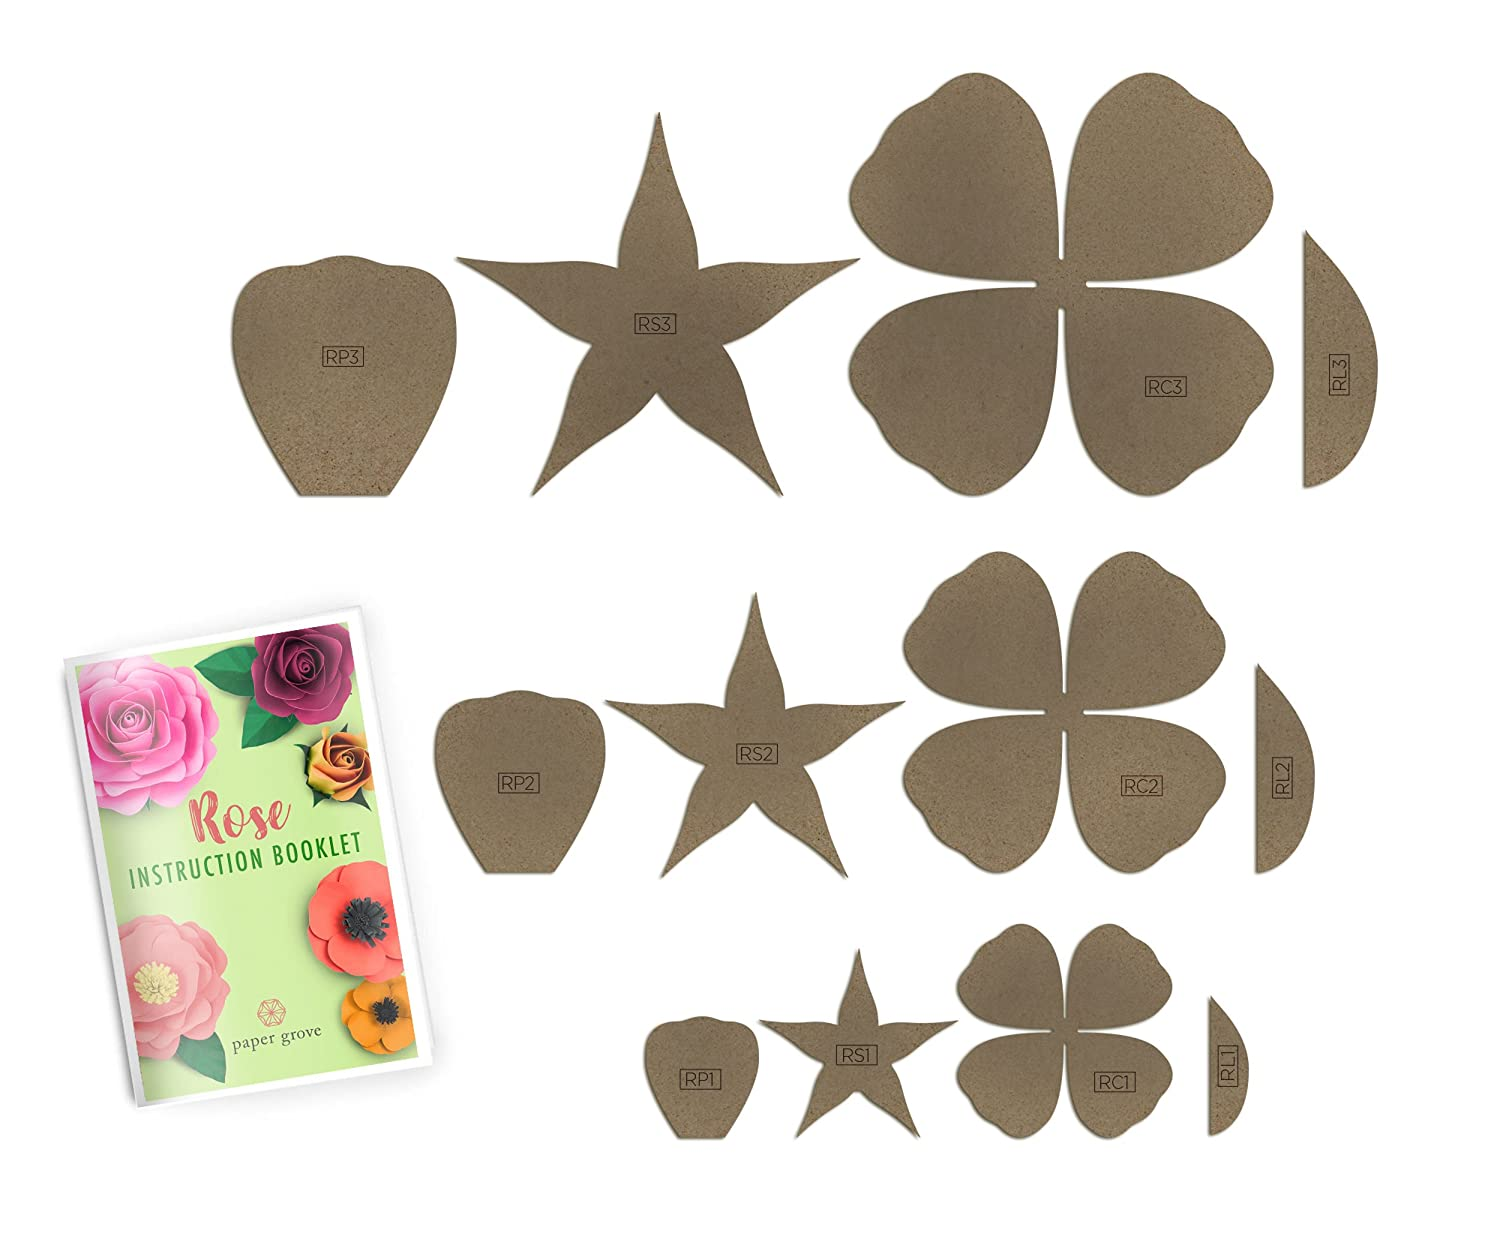 Paper Flower Template 2 18 Peony Leaf Templates And Instruction Book Included DIY Wedding Shower Photography